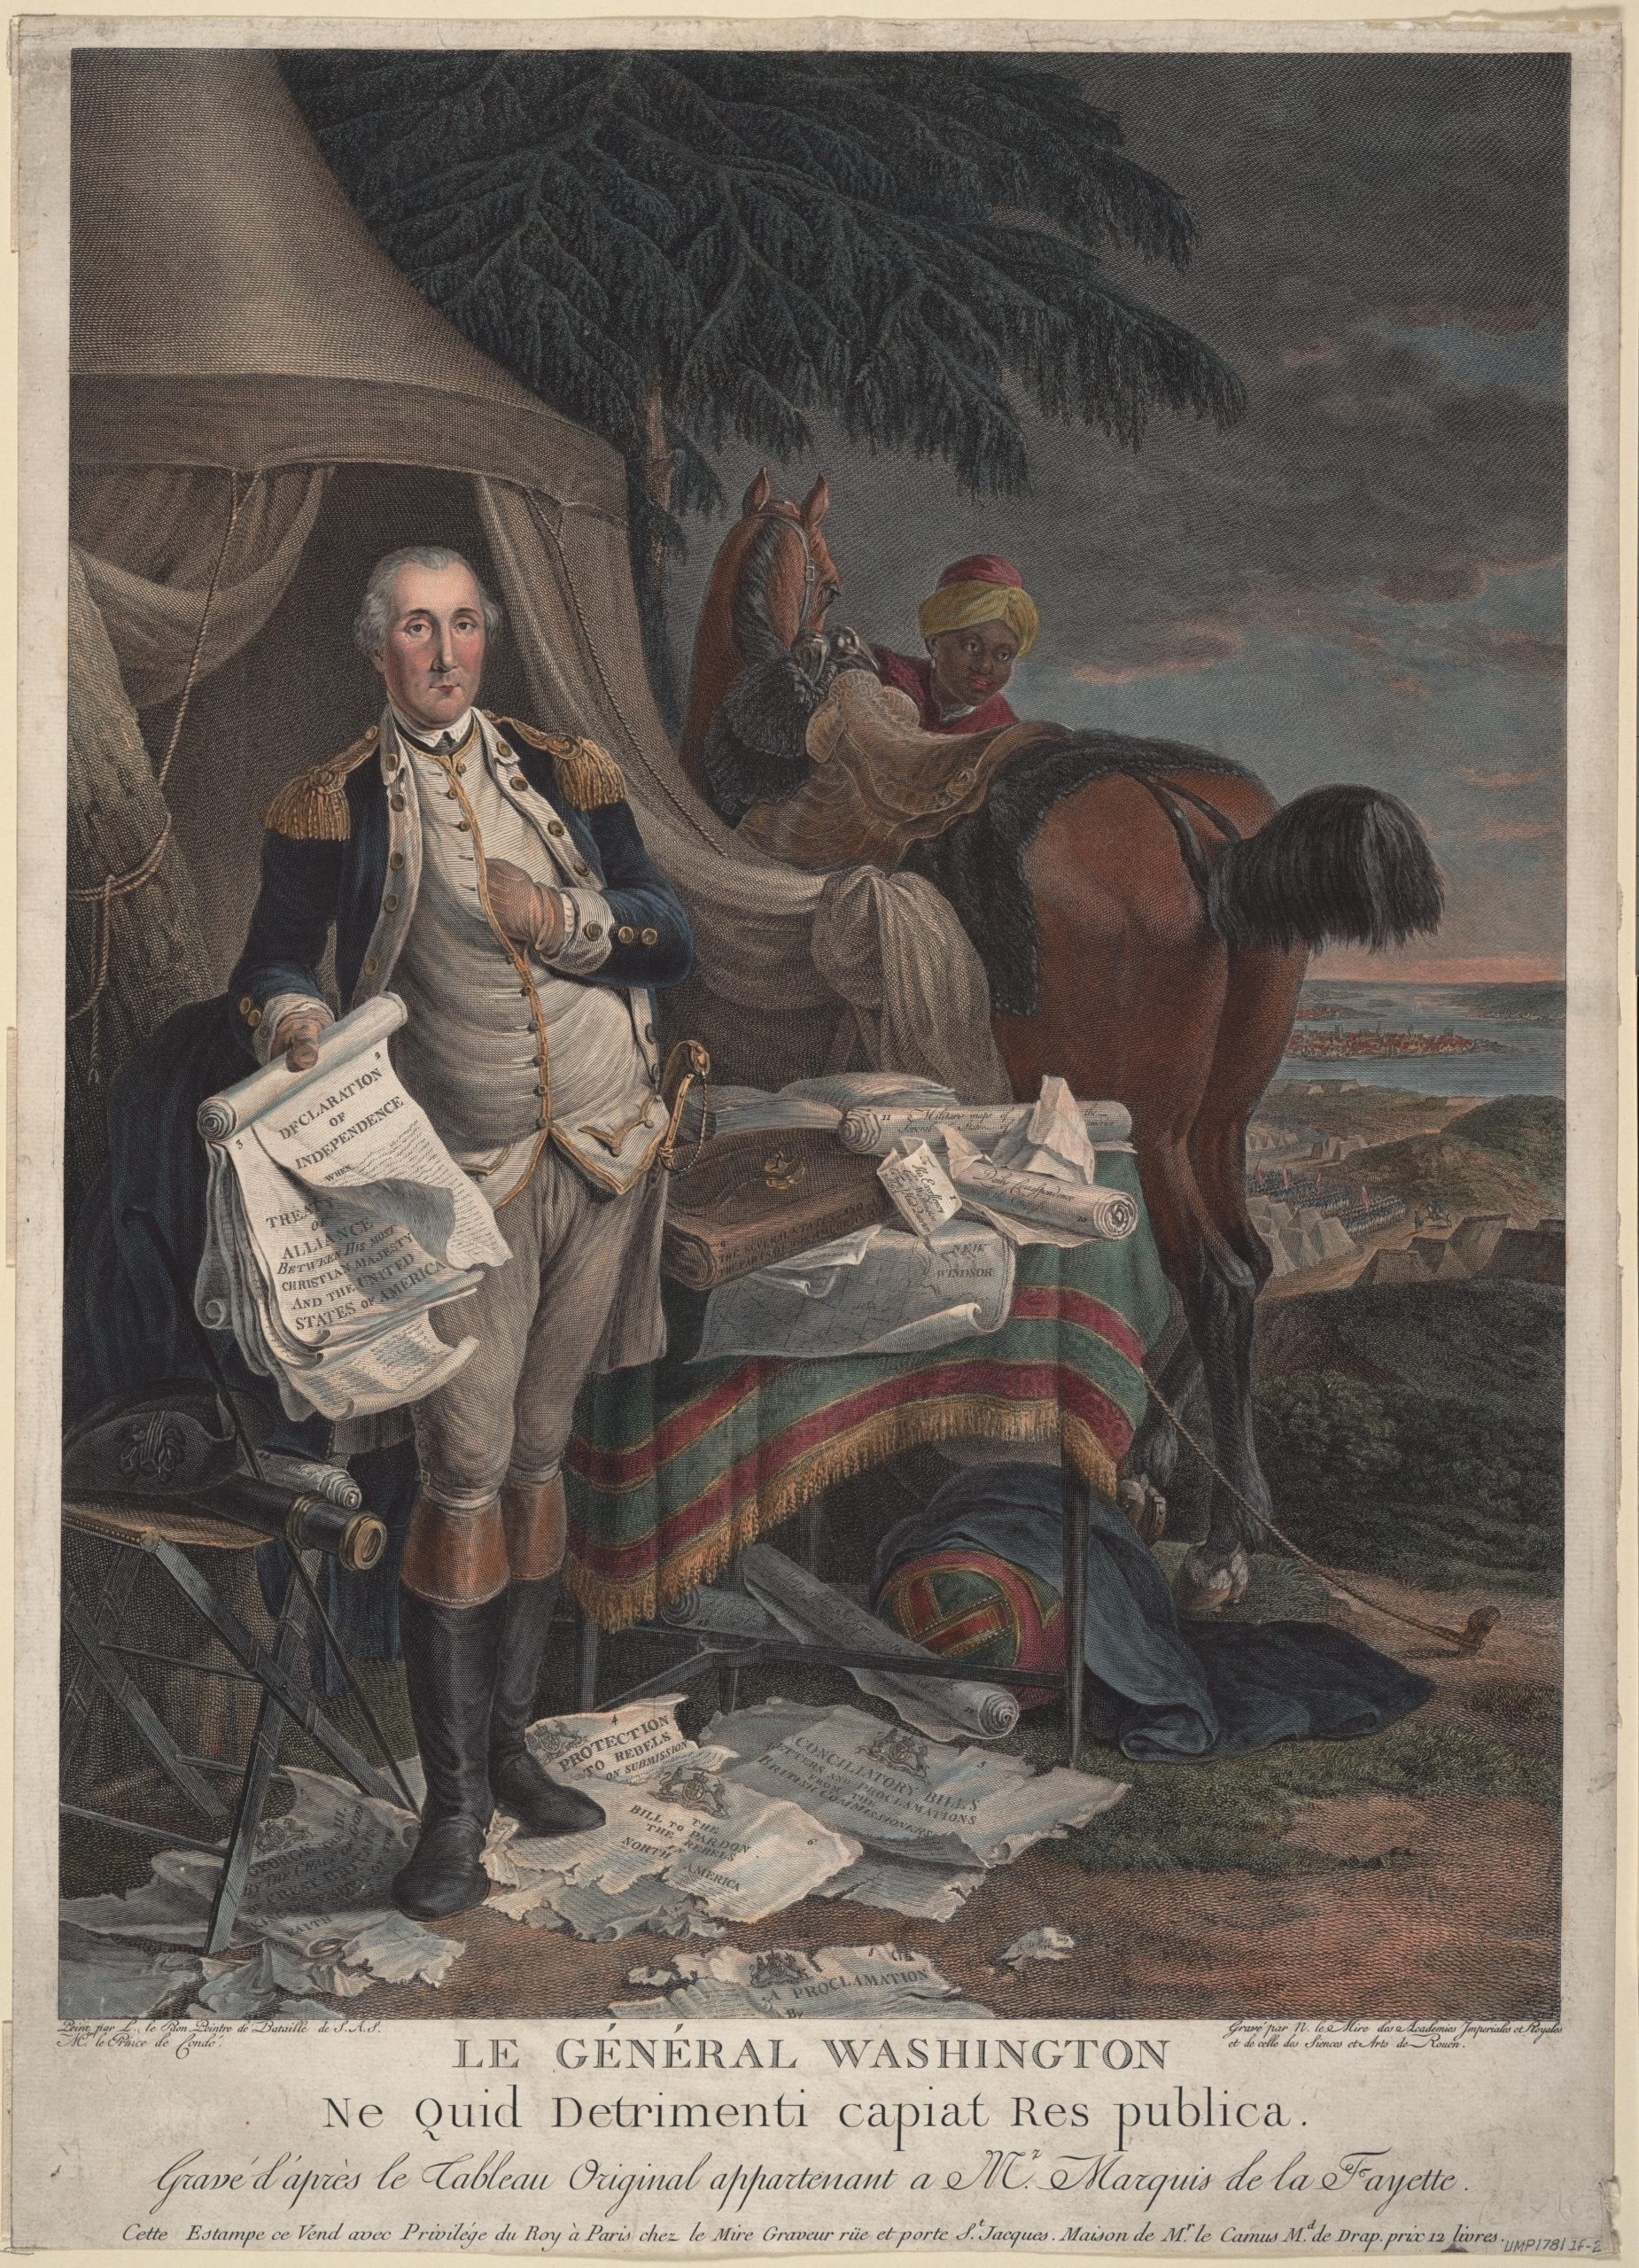 This engraving of George Washington is one of ten great Revolutionary War prints.